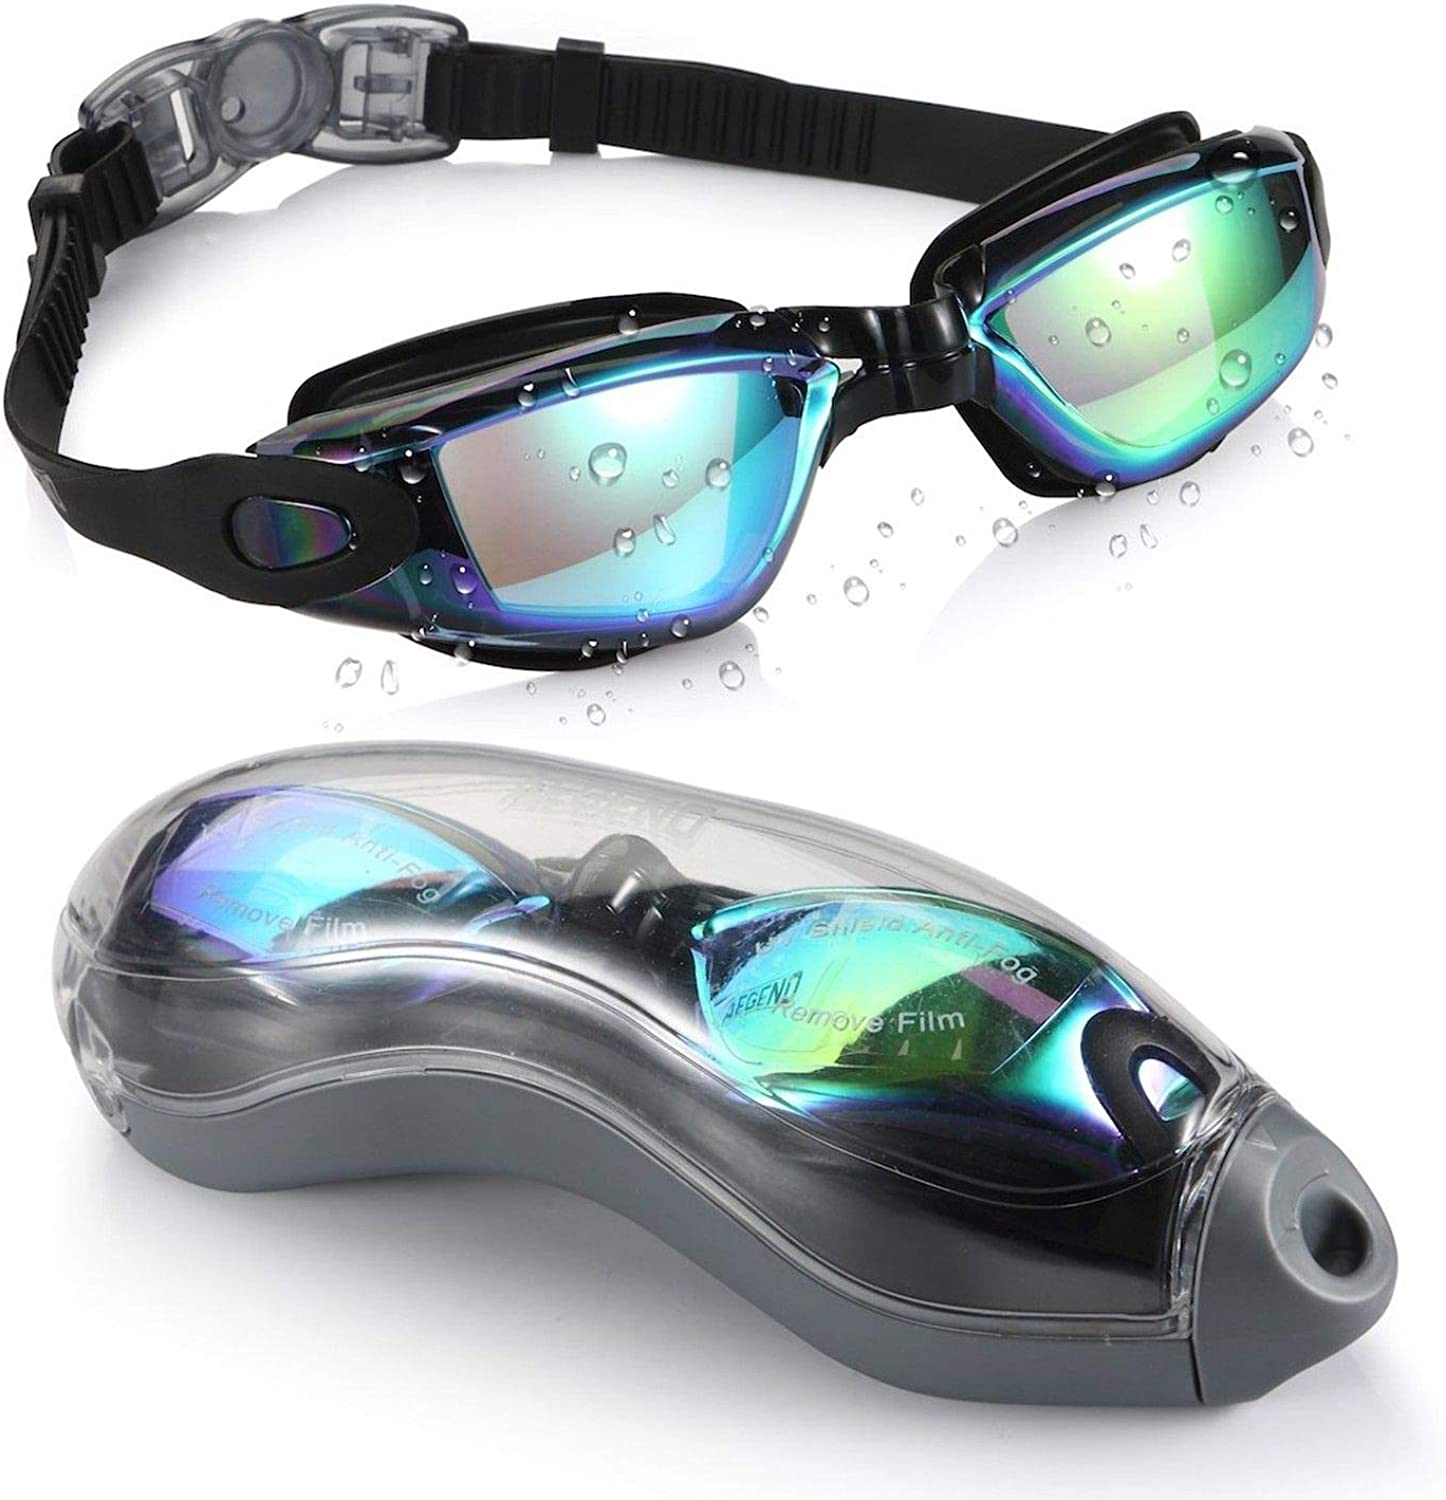 Hondufit Swimming Goggles Anti Fog Popular brand New arrival No Silic Leaking UVProtection